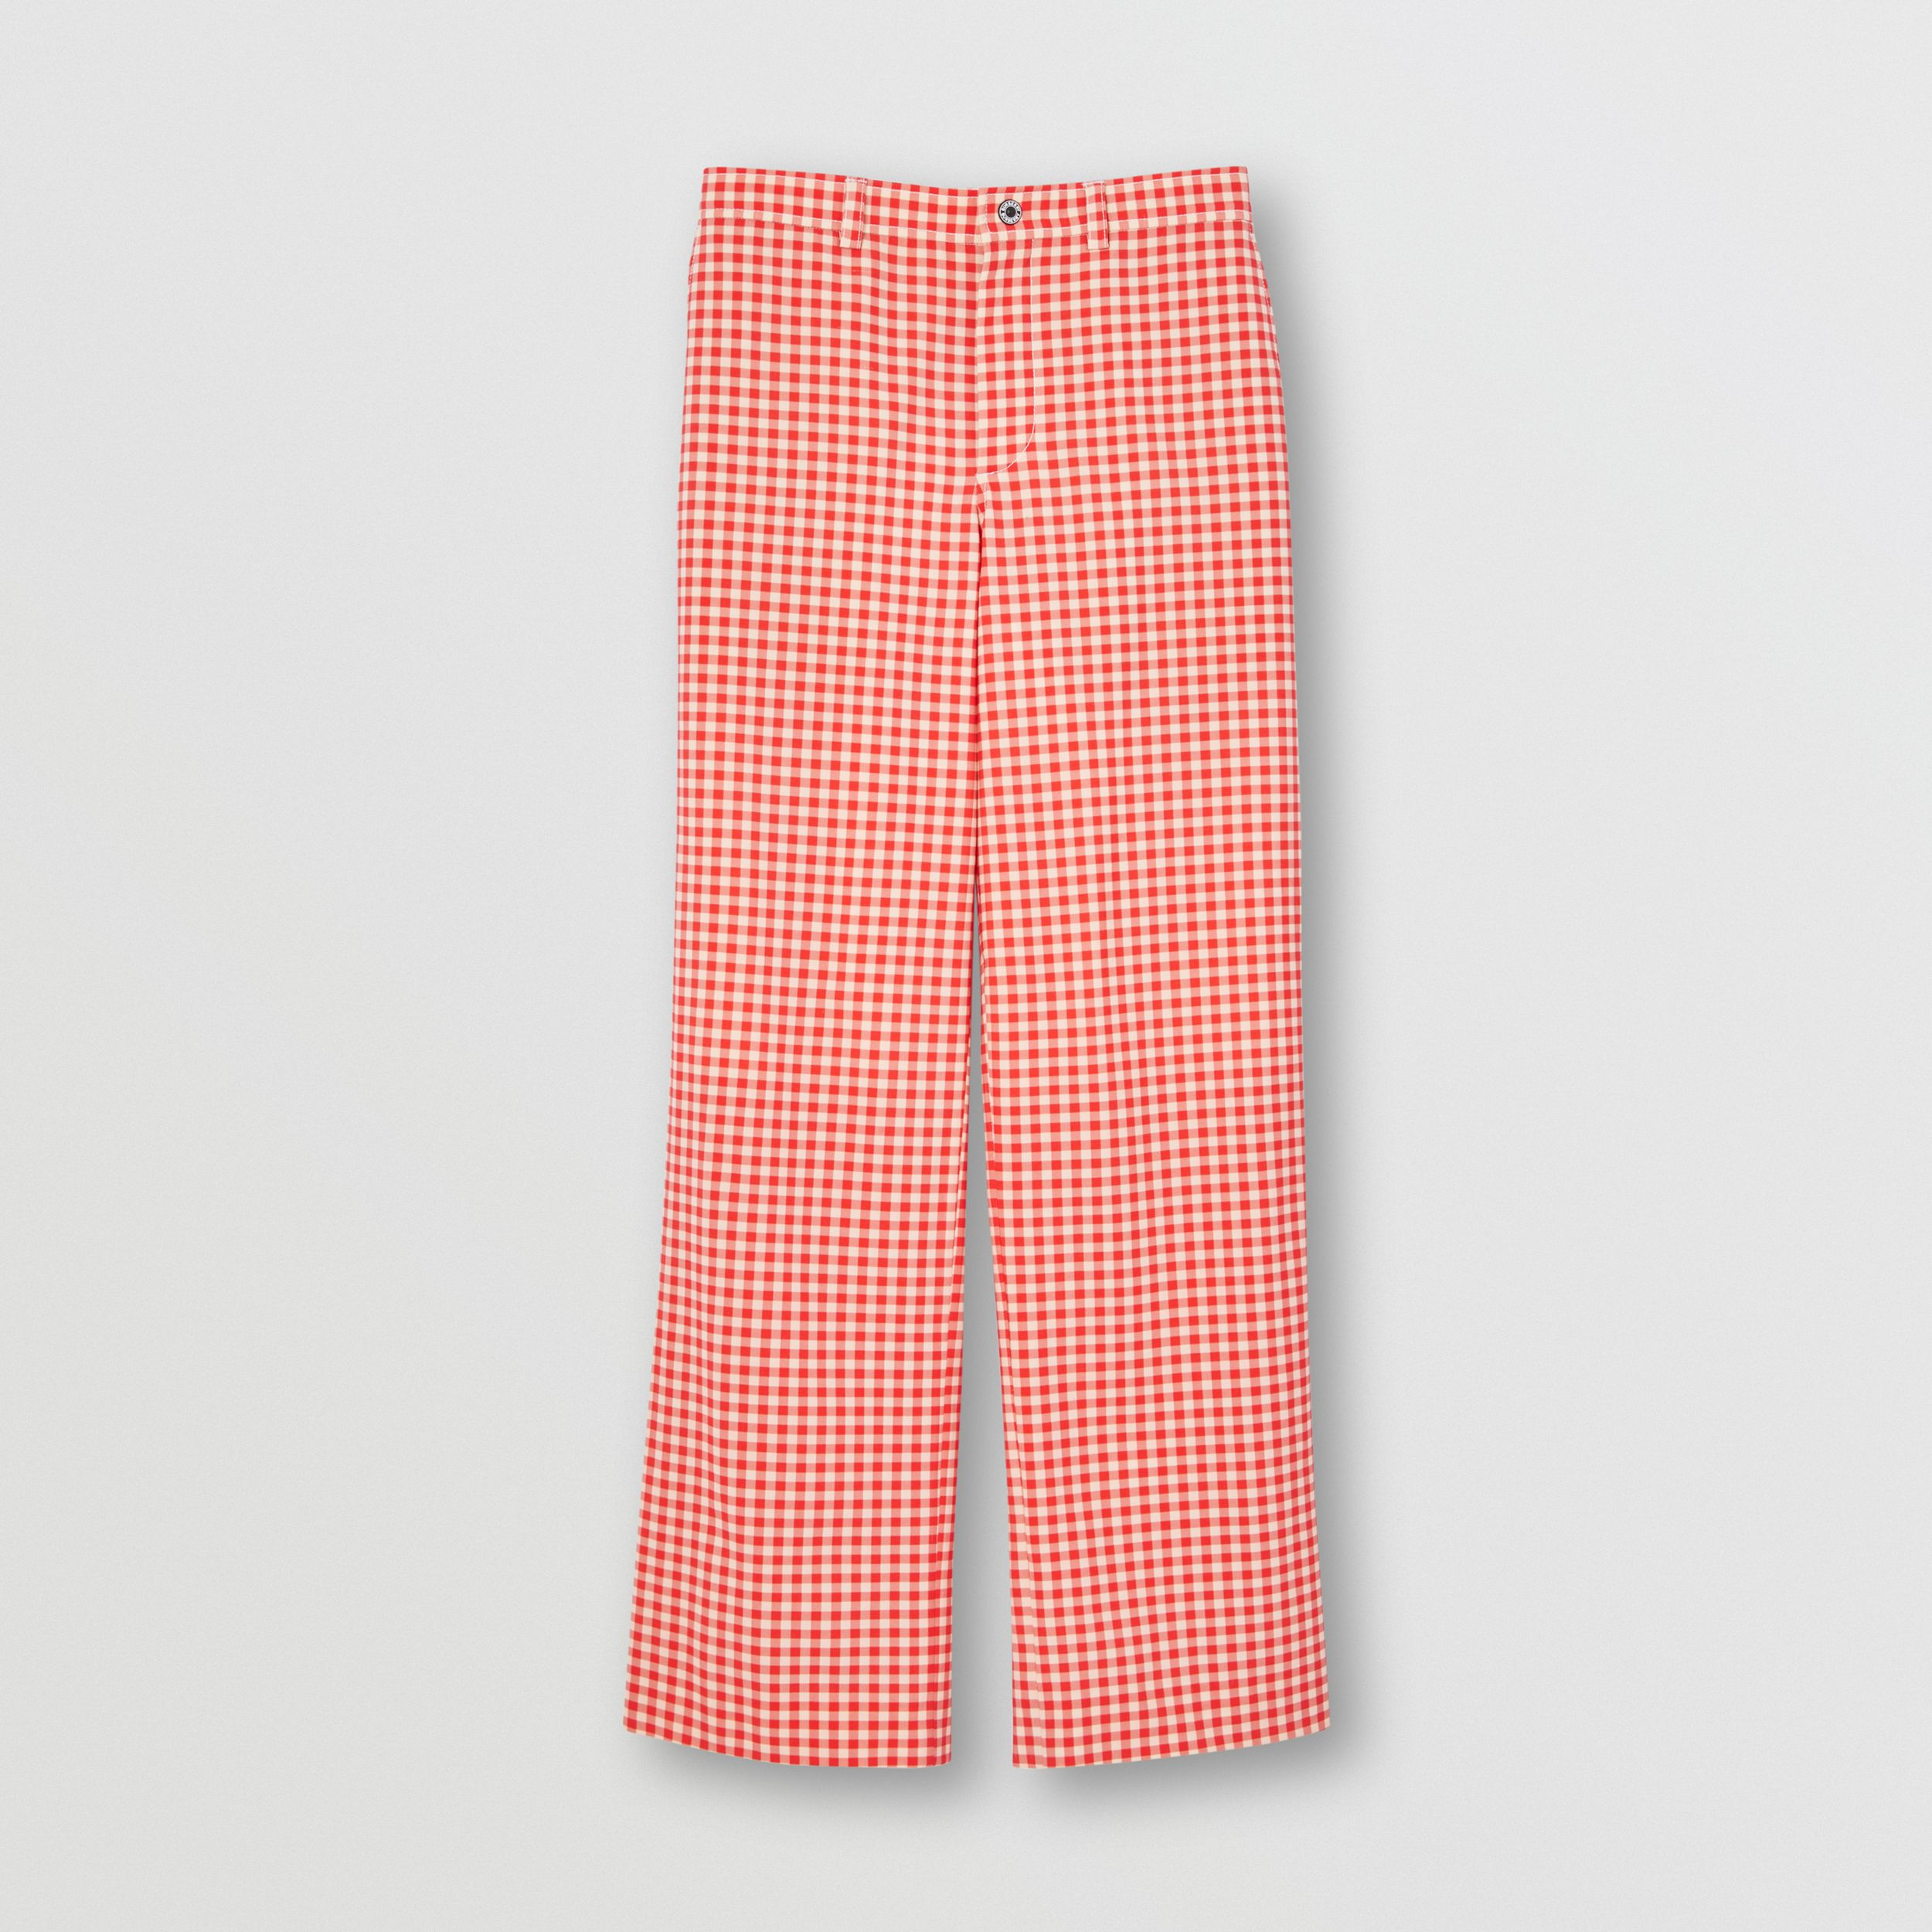 Cut-out Back Gingham Stretch Cotton Trousers in Red - Men | Burberry United Kingdom - 4